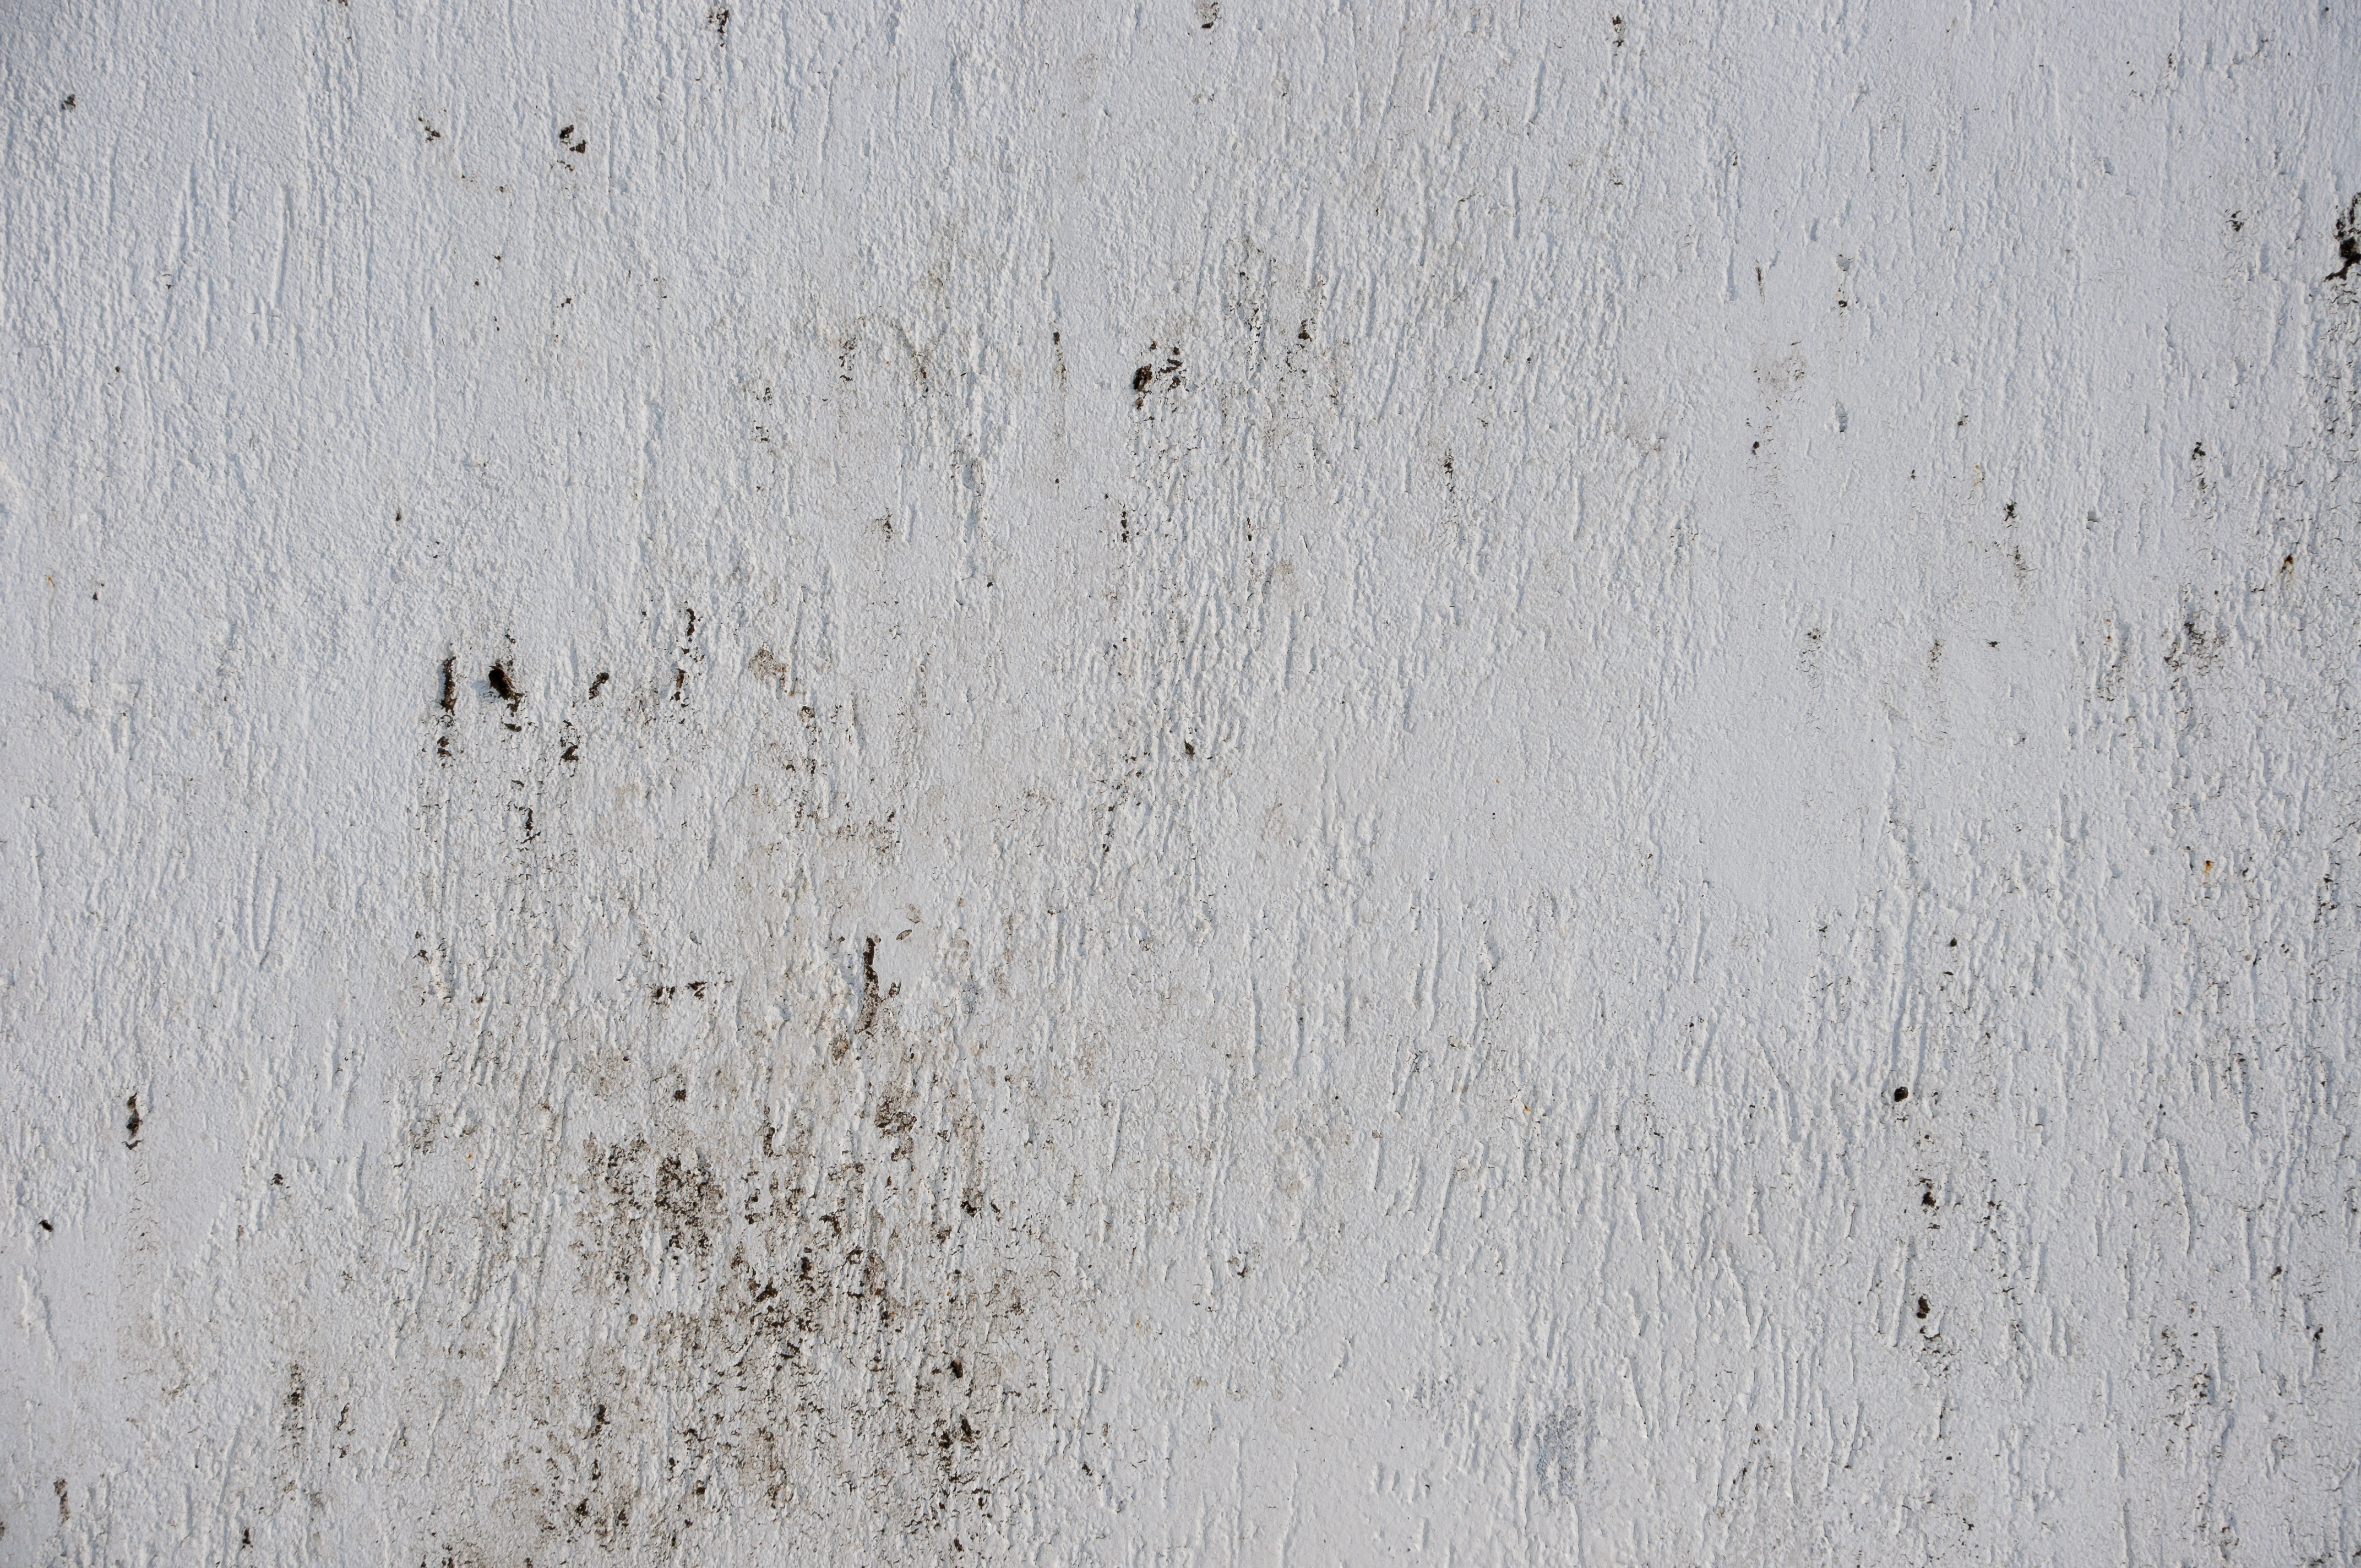 White Wall Texture : Dirty white wall texture with small indents  Flickr - Photo Sharing!